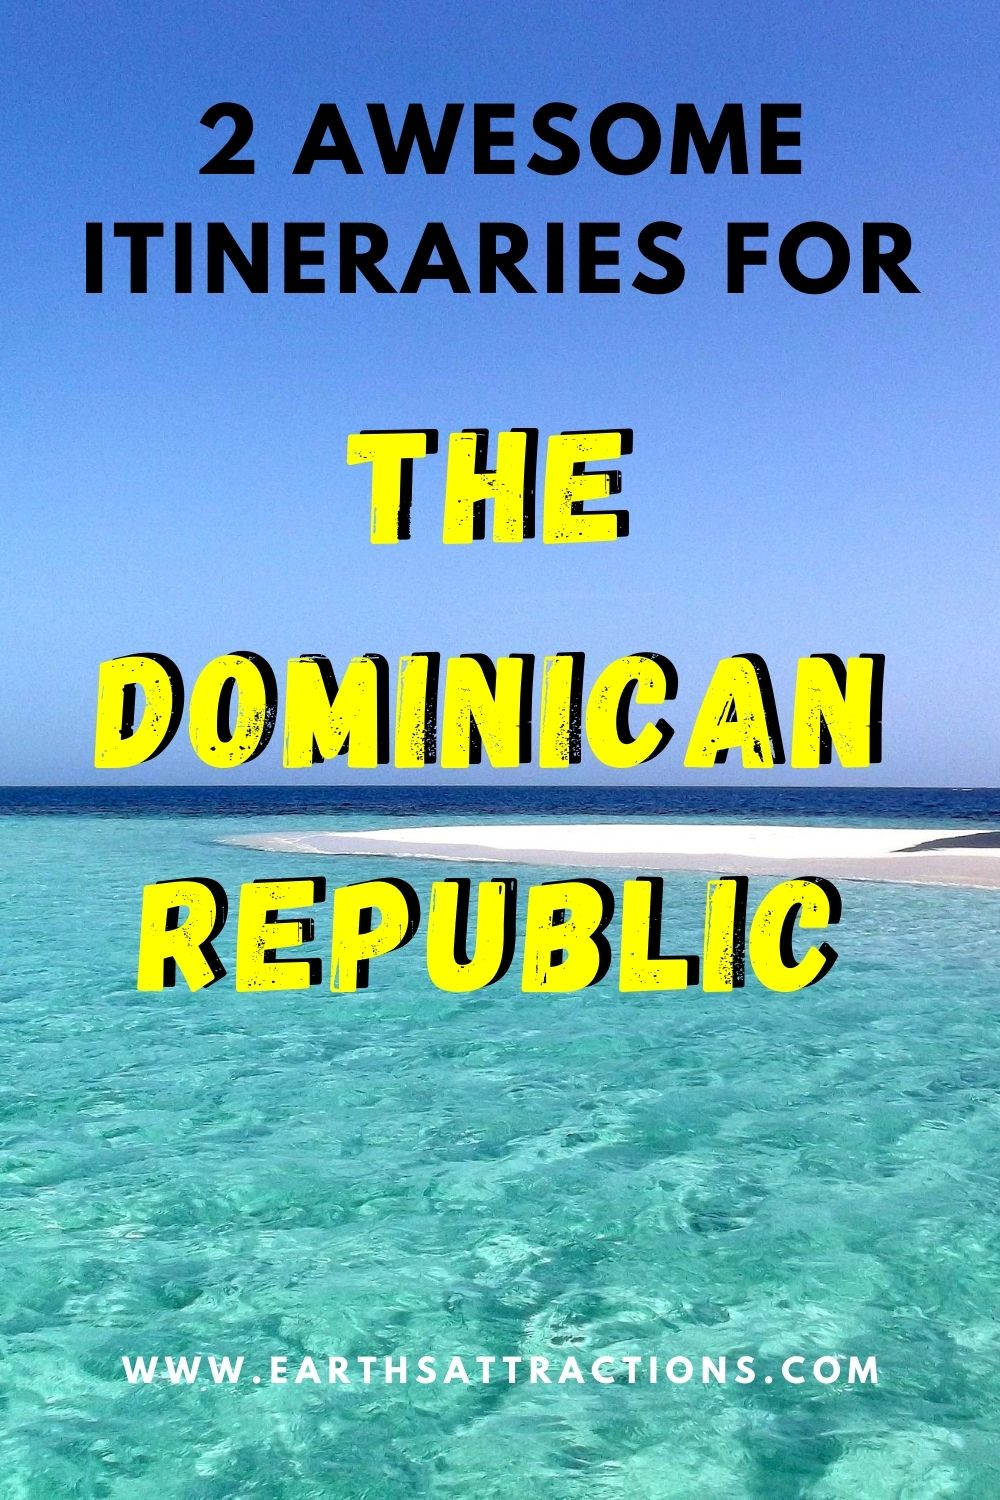 2 Awesome Dominican Republic itineraries – with and without Punta Cana. Discover the best things to do in the Dominican Republic in one week and the top places to visit near Punta Cana in 3 days. #dominicanrepublic #travelitineraries #traveldestinations #dominicanrepublicitinerary #earthsattractions #northamerica